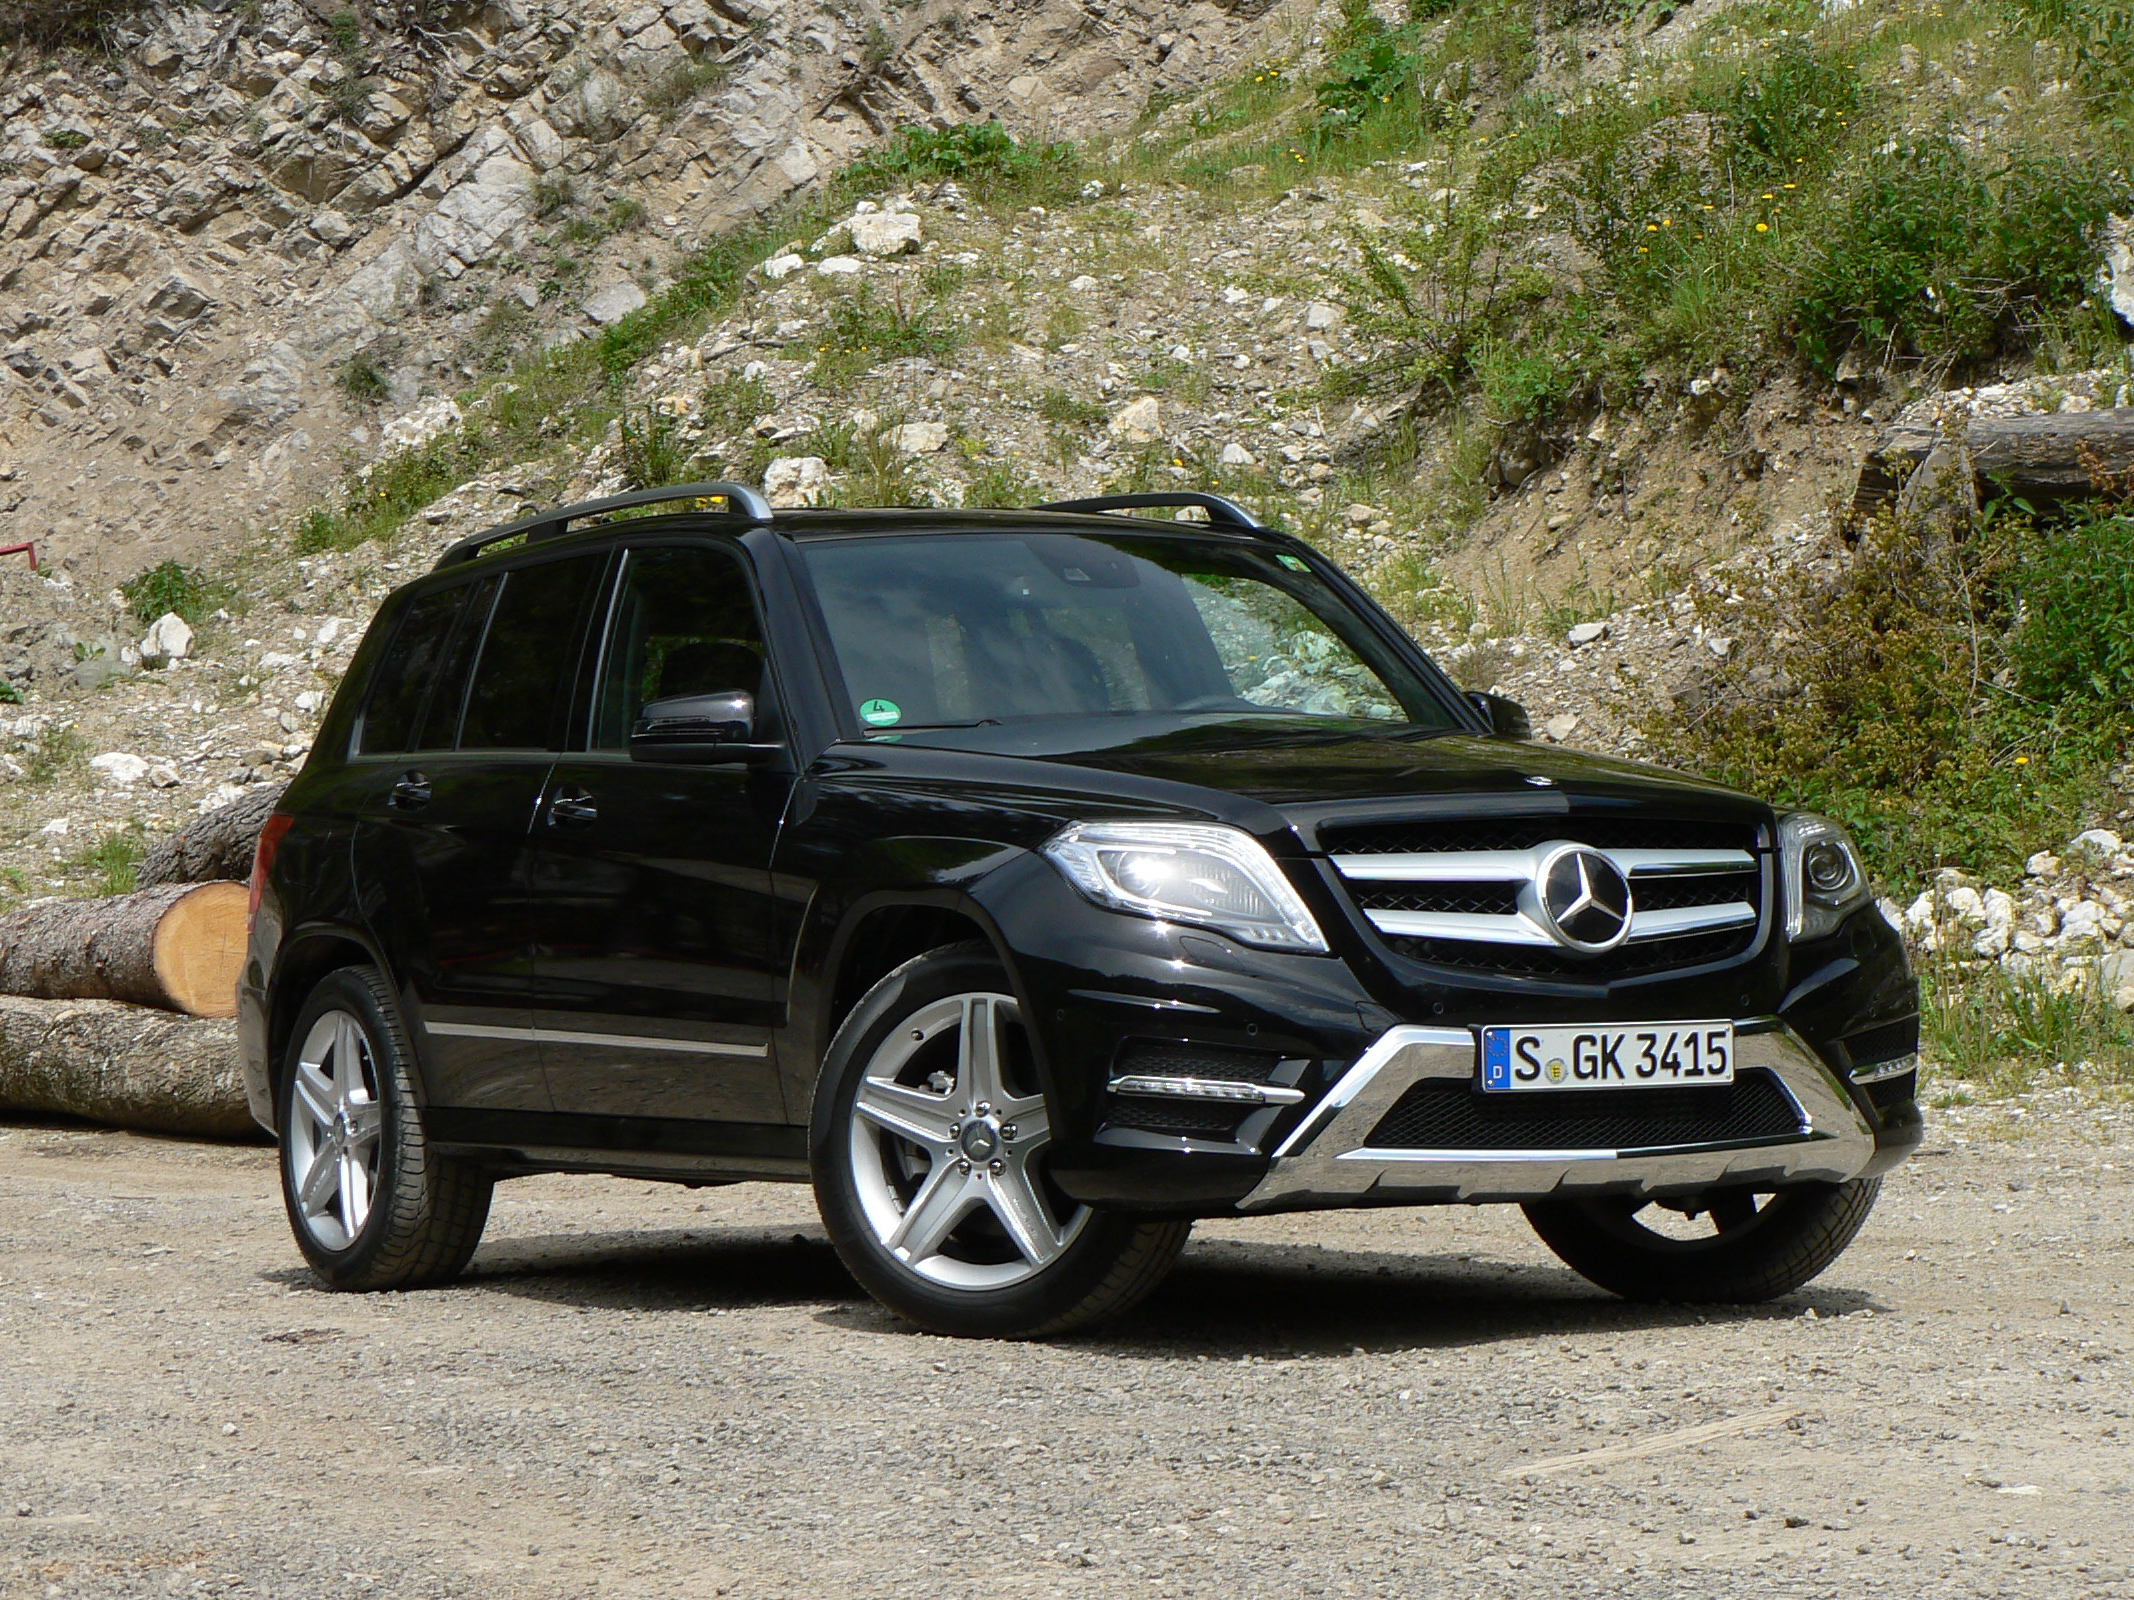 first drive video 2013 mercedes benz glk class - 2013 Mercedes Benz Glk Class